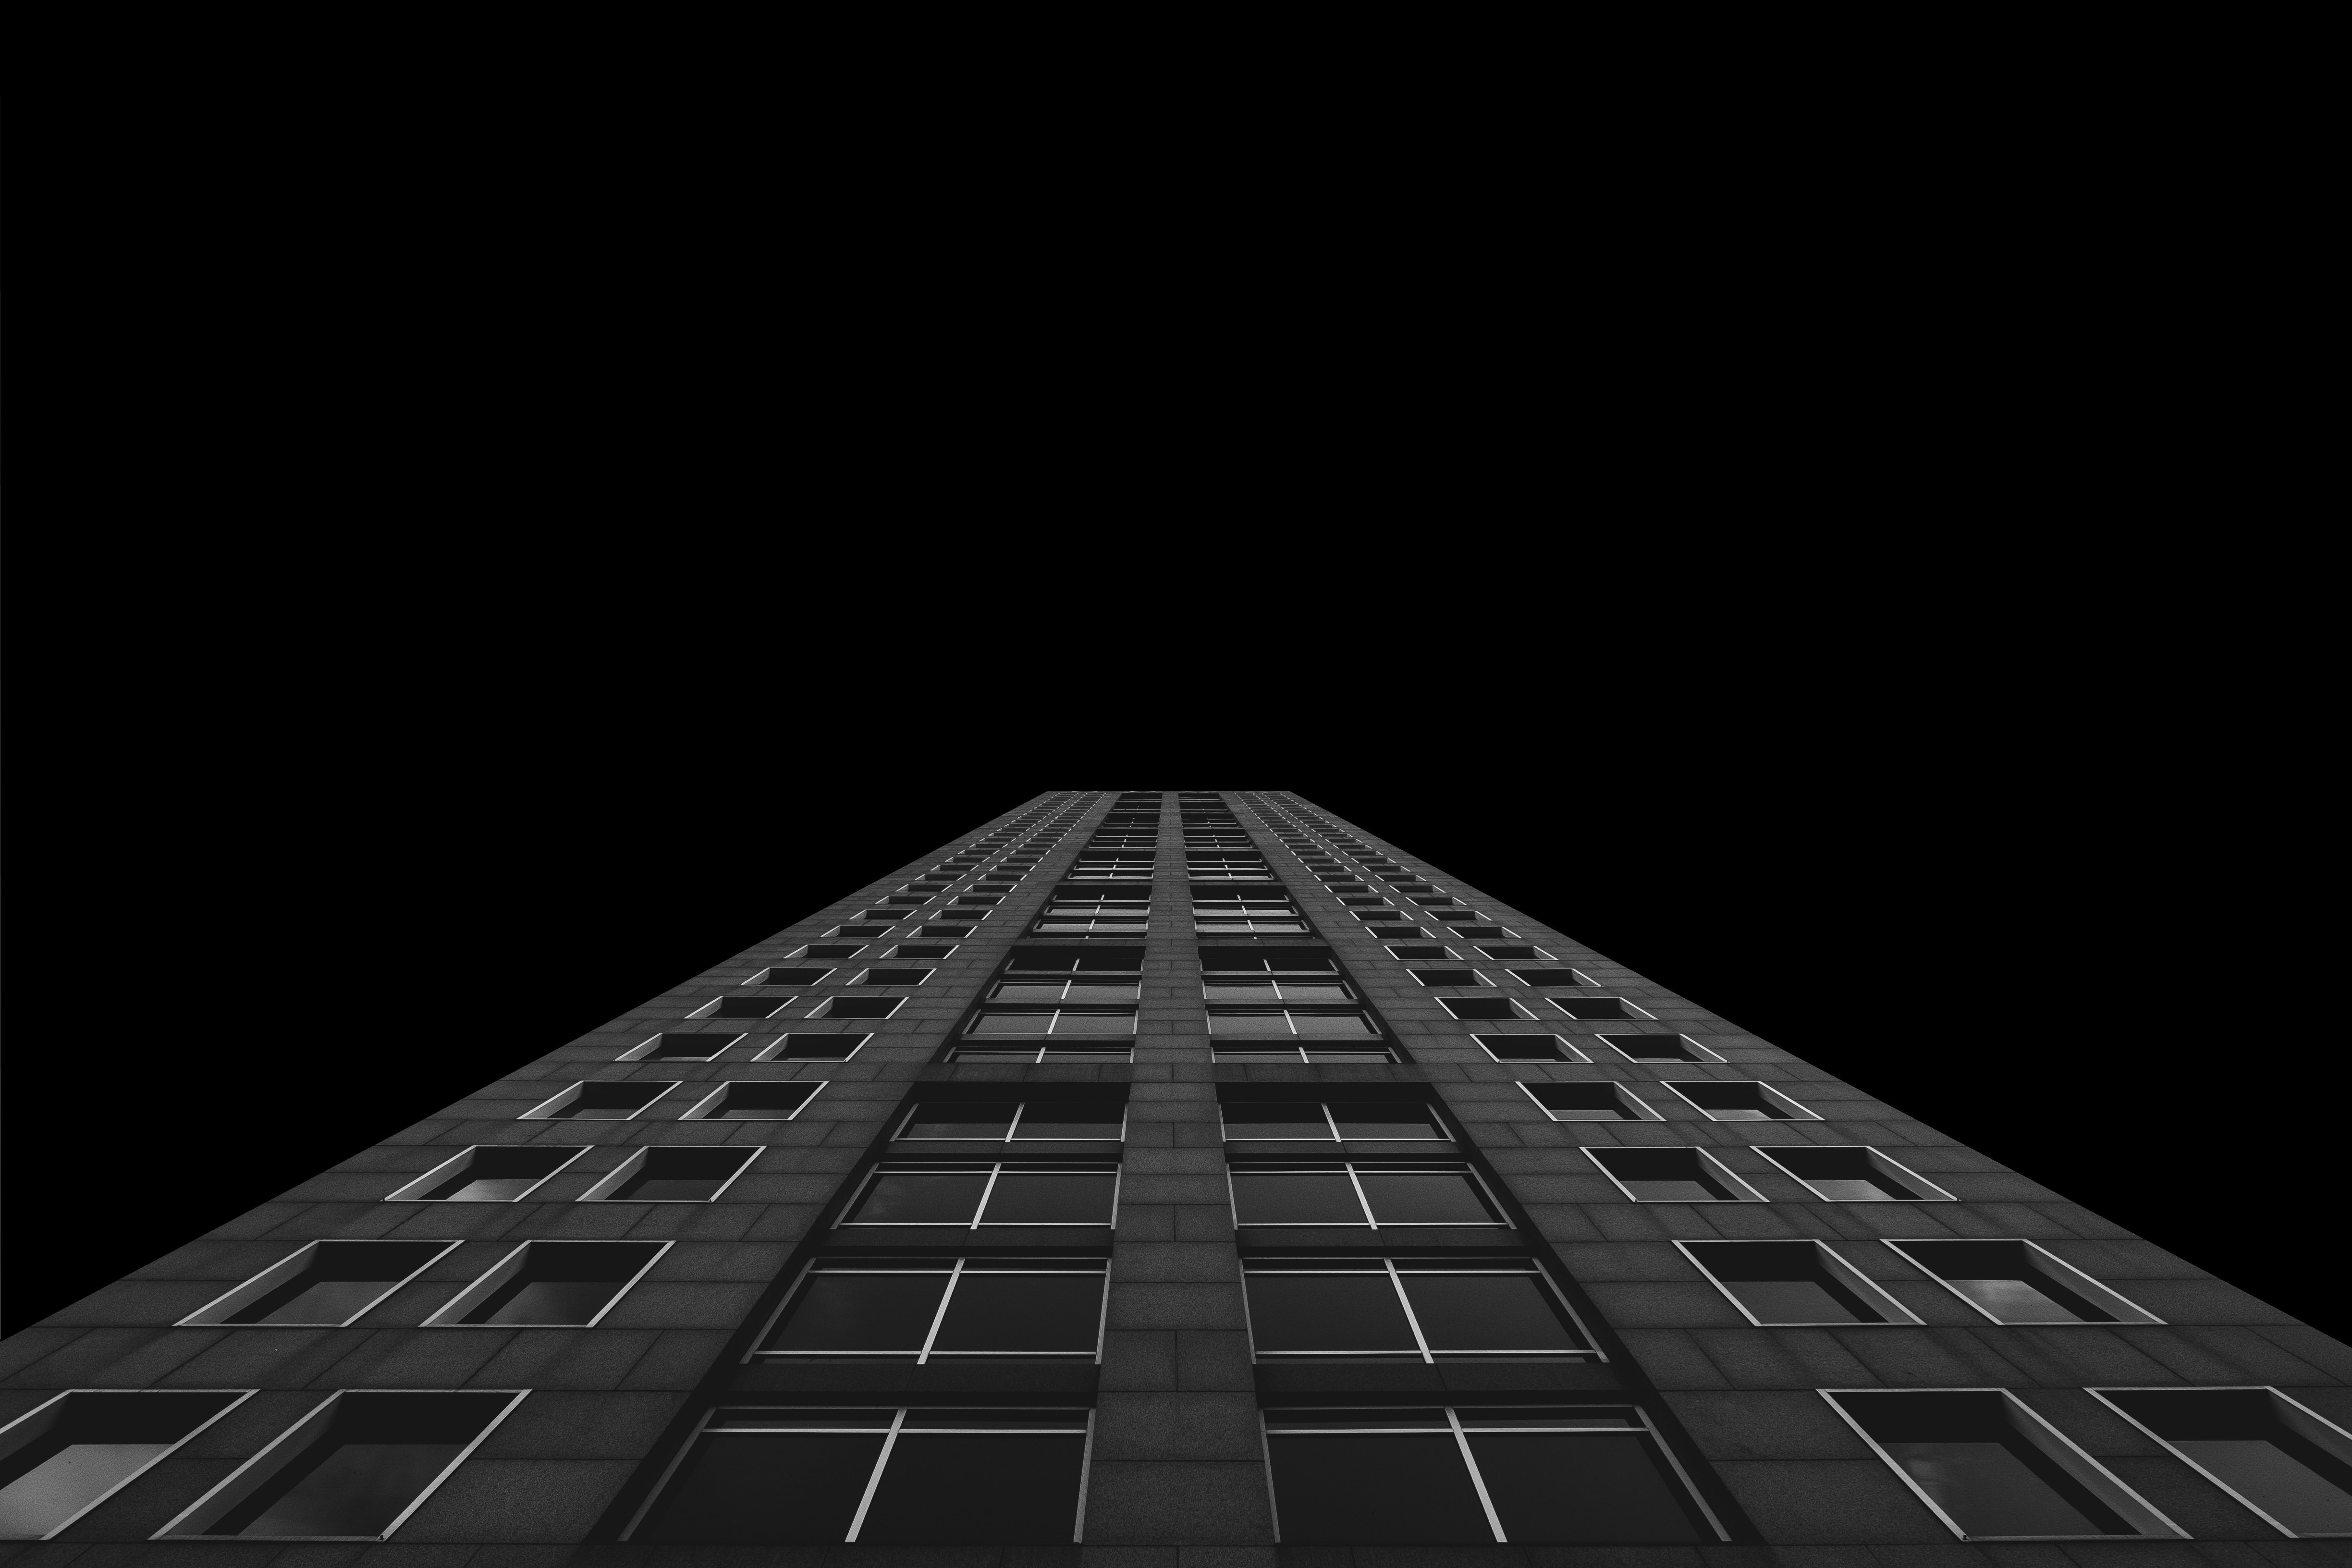 worm's eye view photo of building during night time